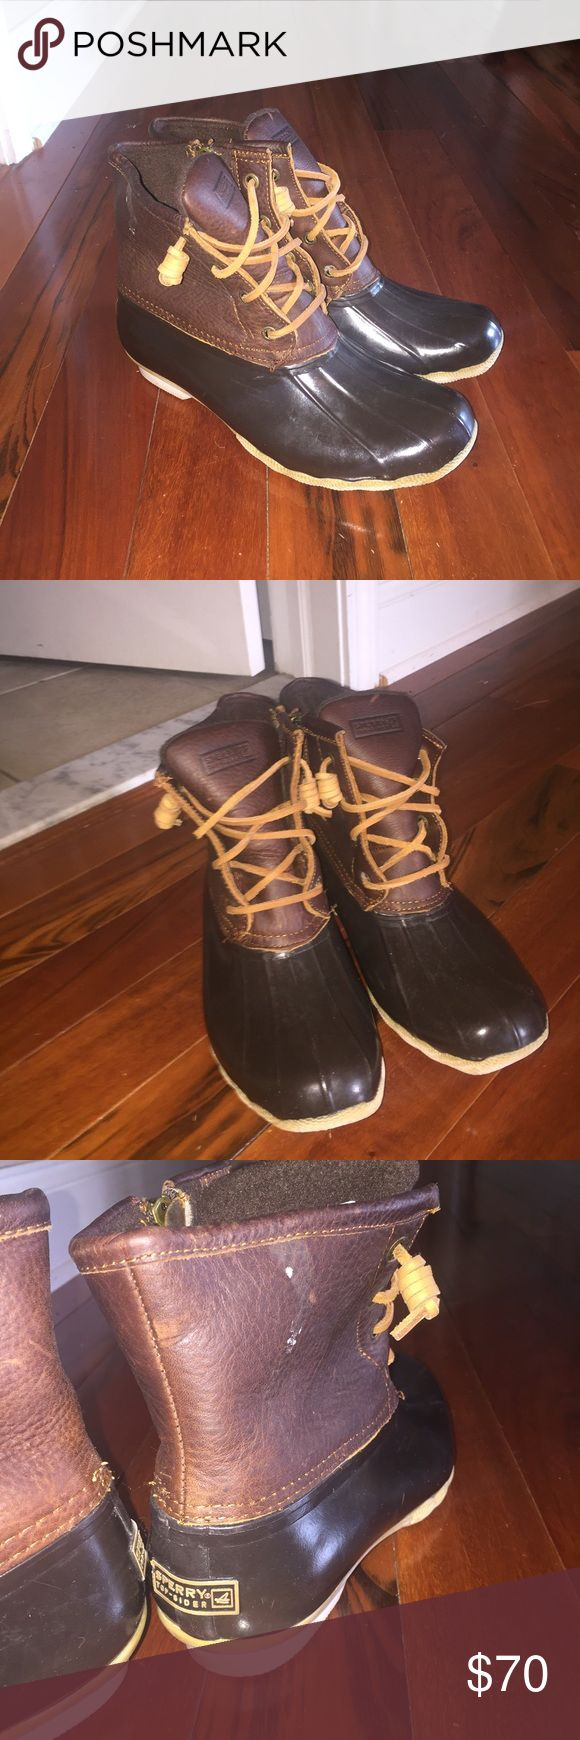 "Sperry top-sider ""Duck Boots"" Woman's size 7 Sperry ""duck boots"" for winter. They zip on the side. They are brown. In very very good condition, worn only twice. Waterproof material near the foot and also had fur on the inside. Very warm! There is a small spot on the side of one boot on the outside, the bottoms are a little discolored but other than that they are perfect. Let me know if you have any questions! They are the Sperry version of ""bean boots"" from LLBean Sperry Top-Sider Shoes…"